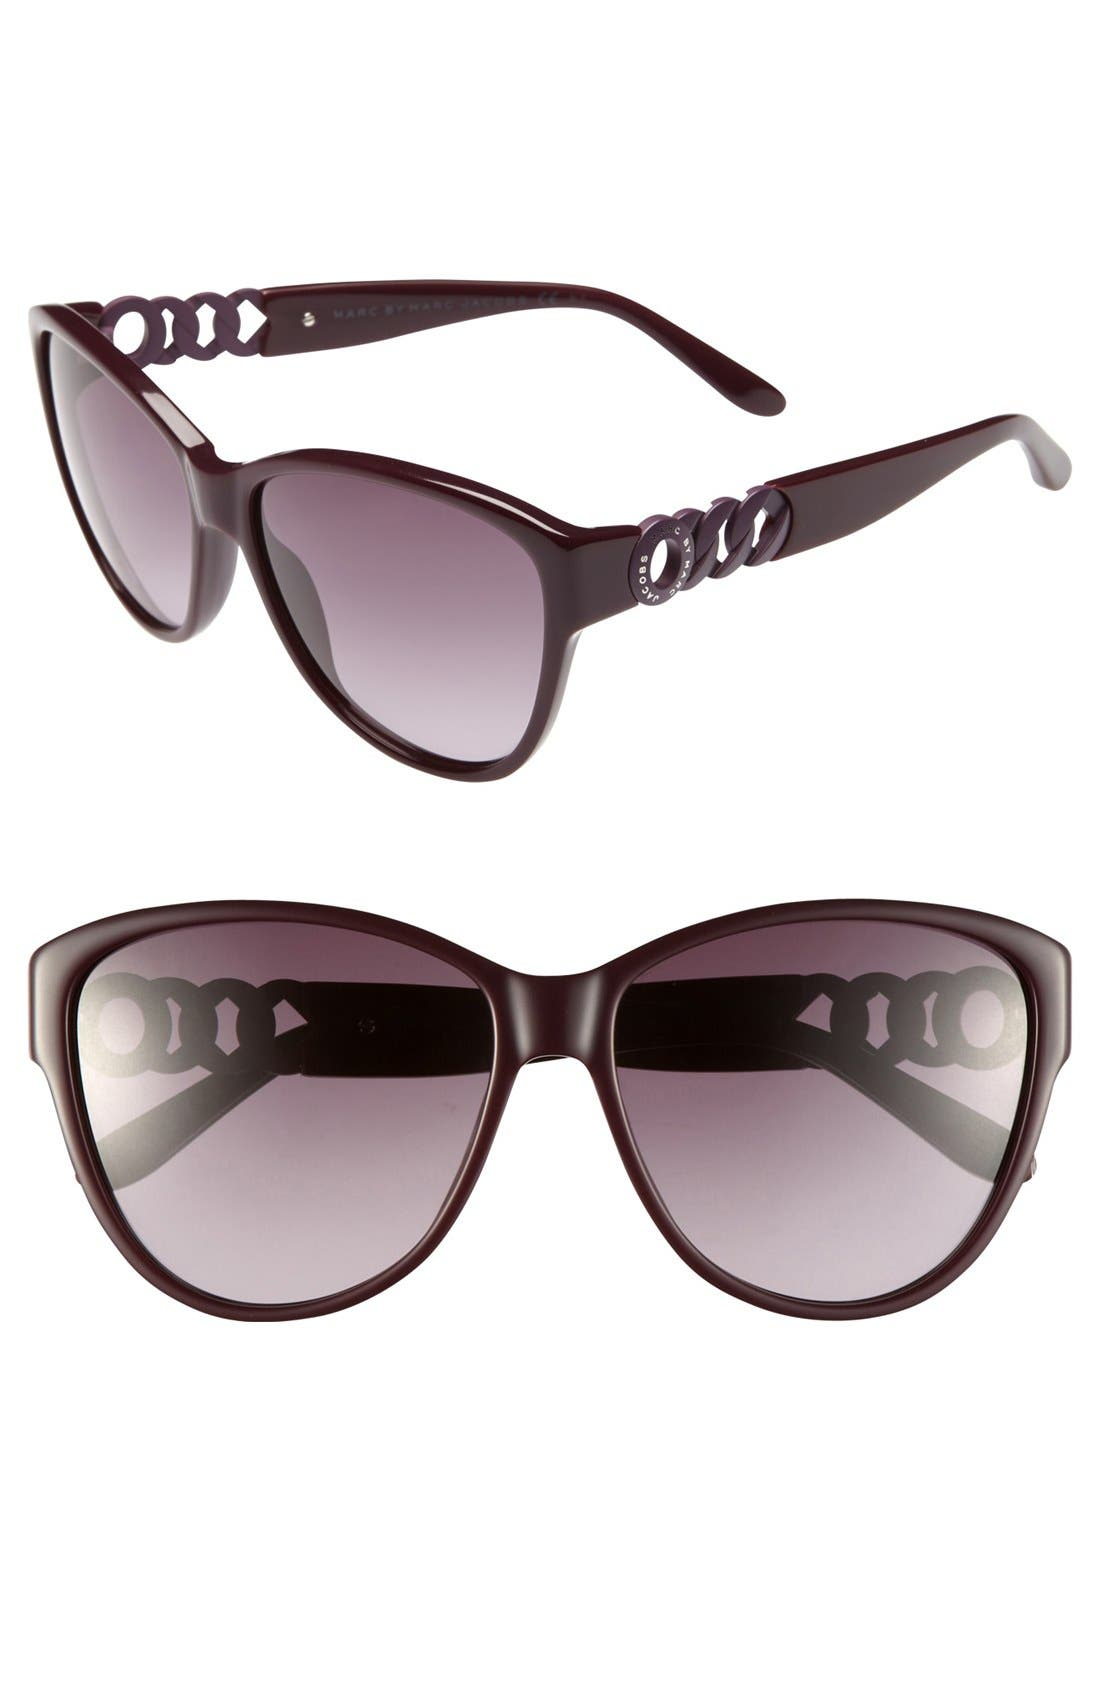 Main Image - MARC BY MARC JACOBS 58mm Retro Sunglasses